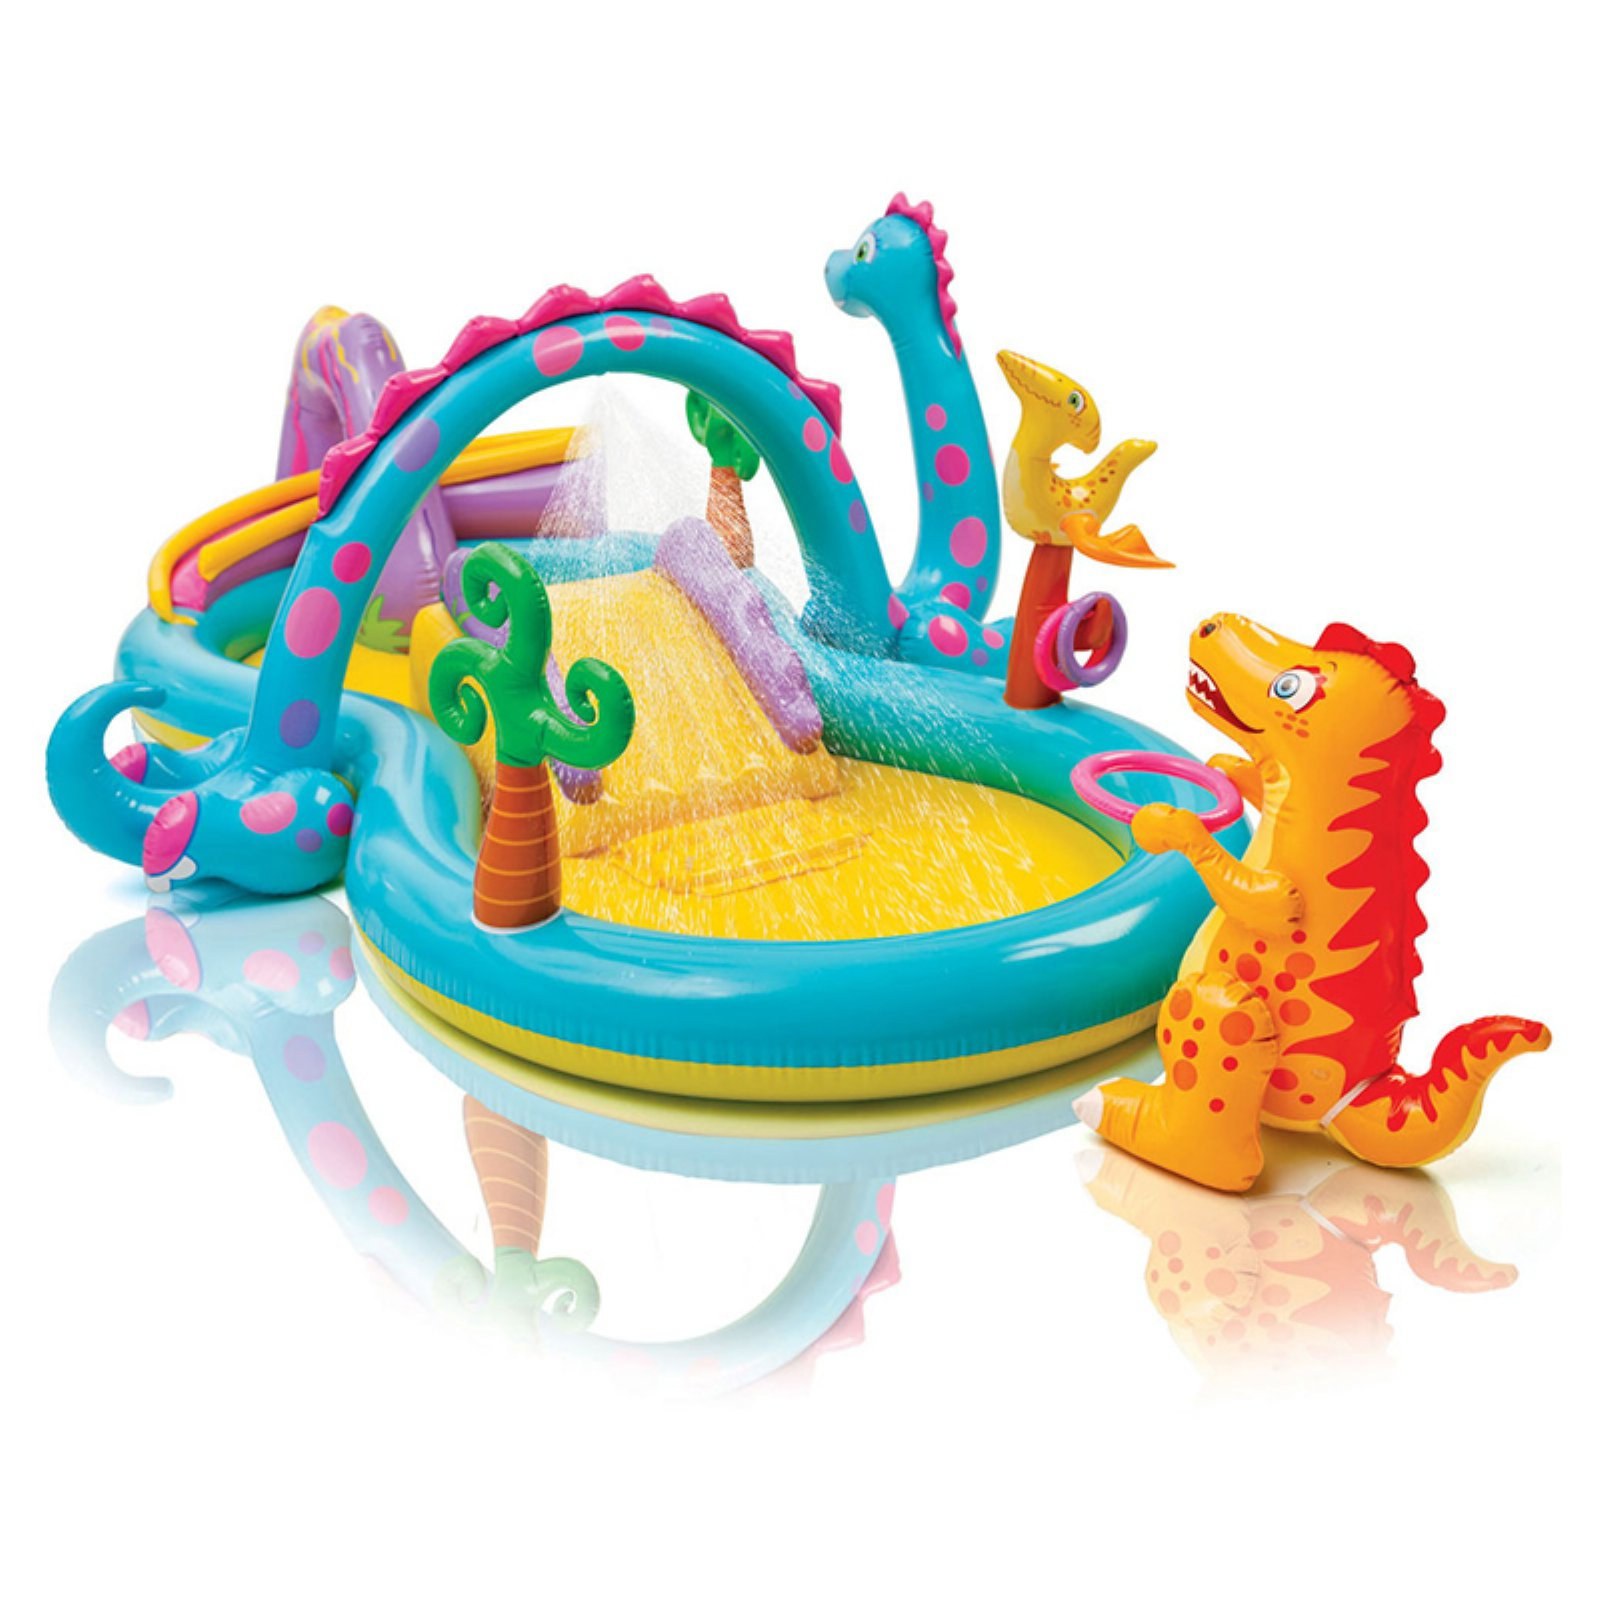 Intex Inflatable Dinoland Play Center with Sprayer